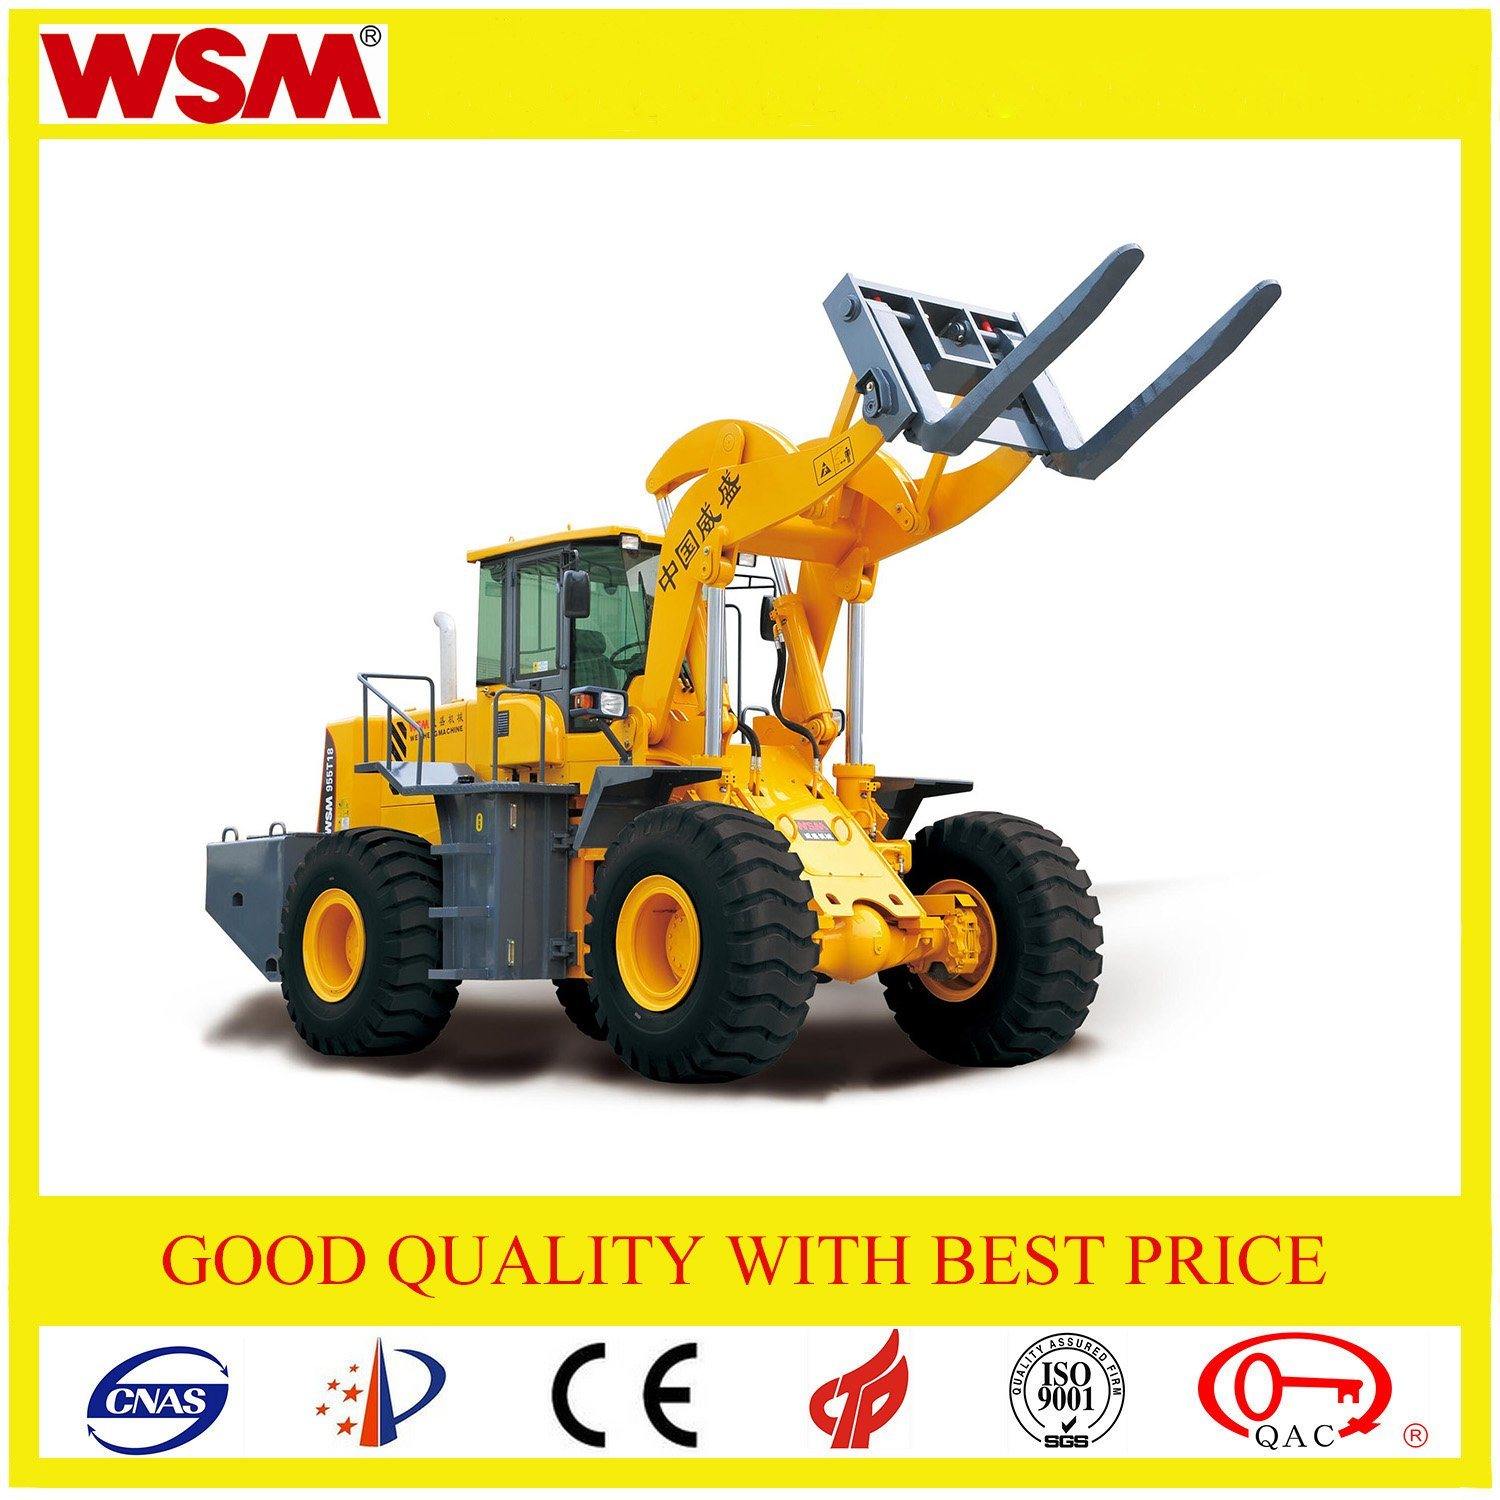 18t Wheel Forklift Loader with Ce Can Change Bucket Wsm951t18